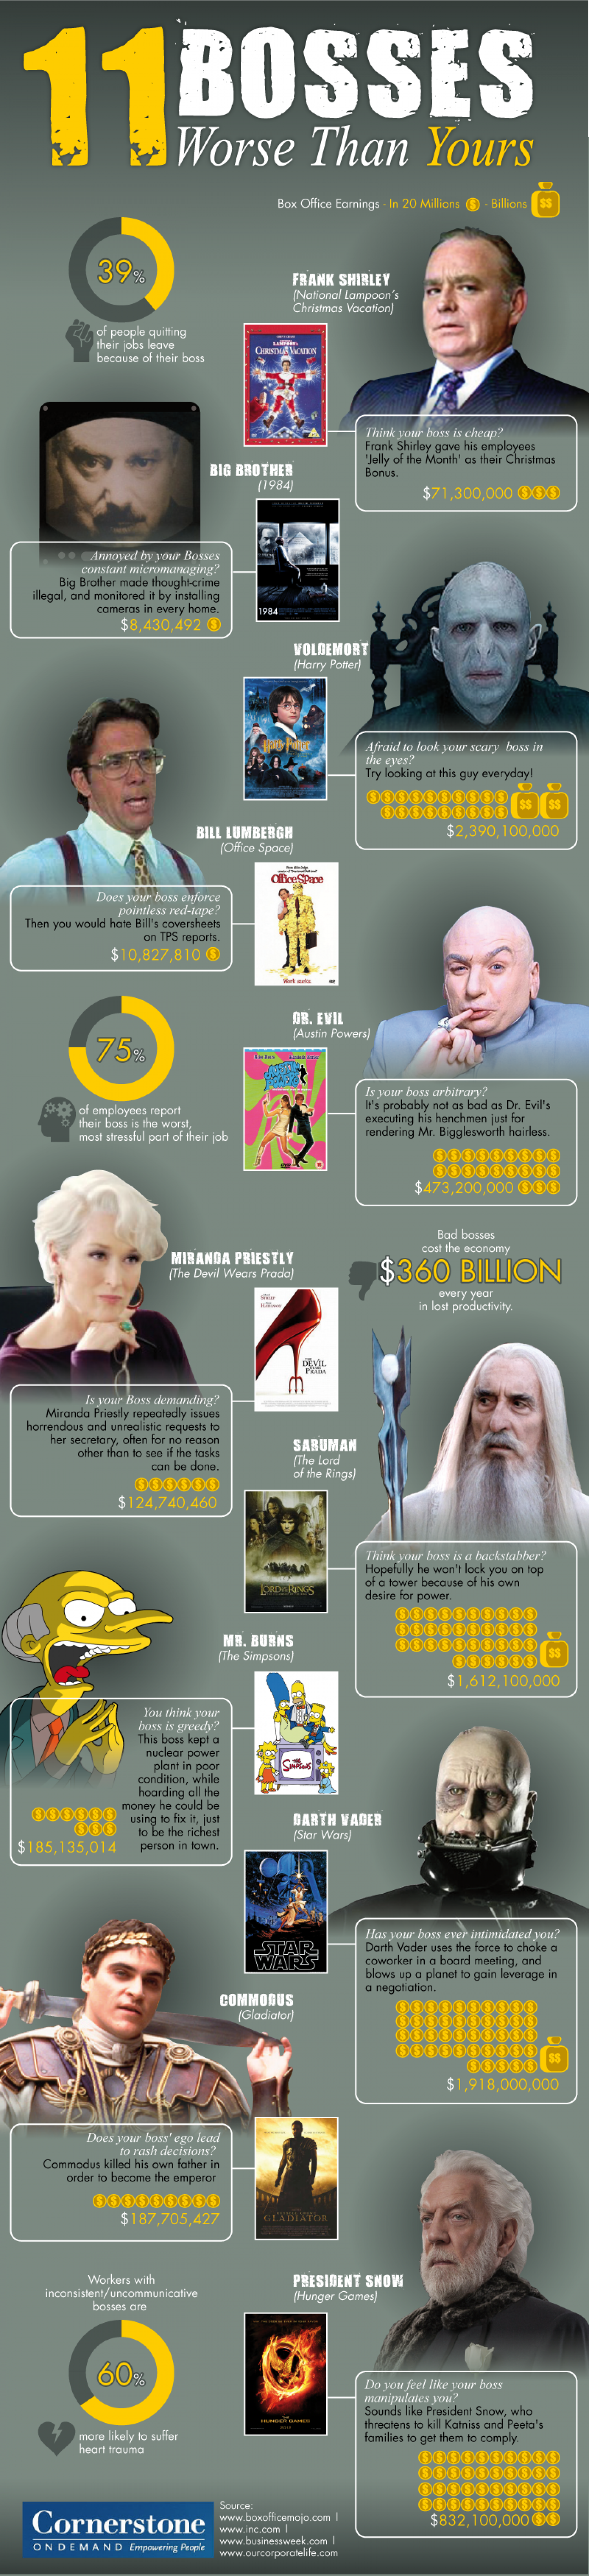 11 Bosses Worse Than Yours  Infographic